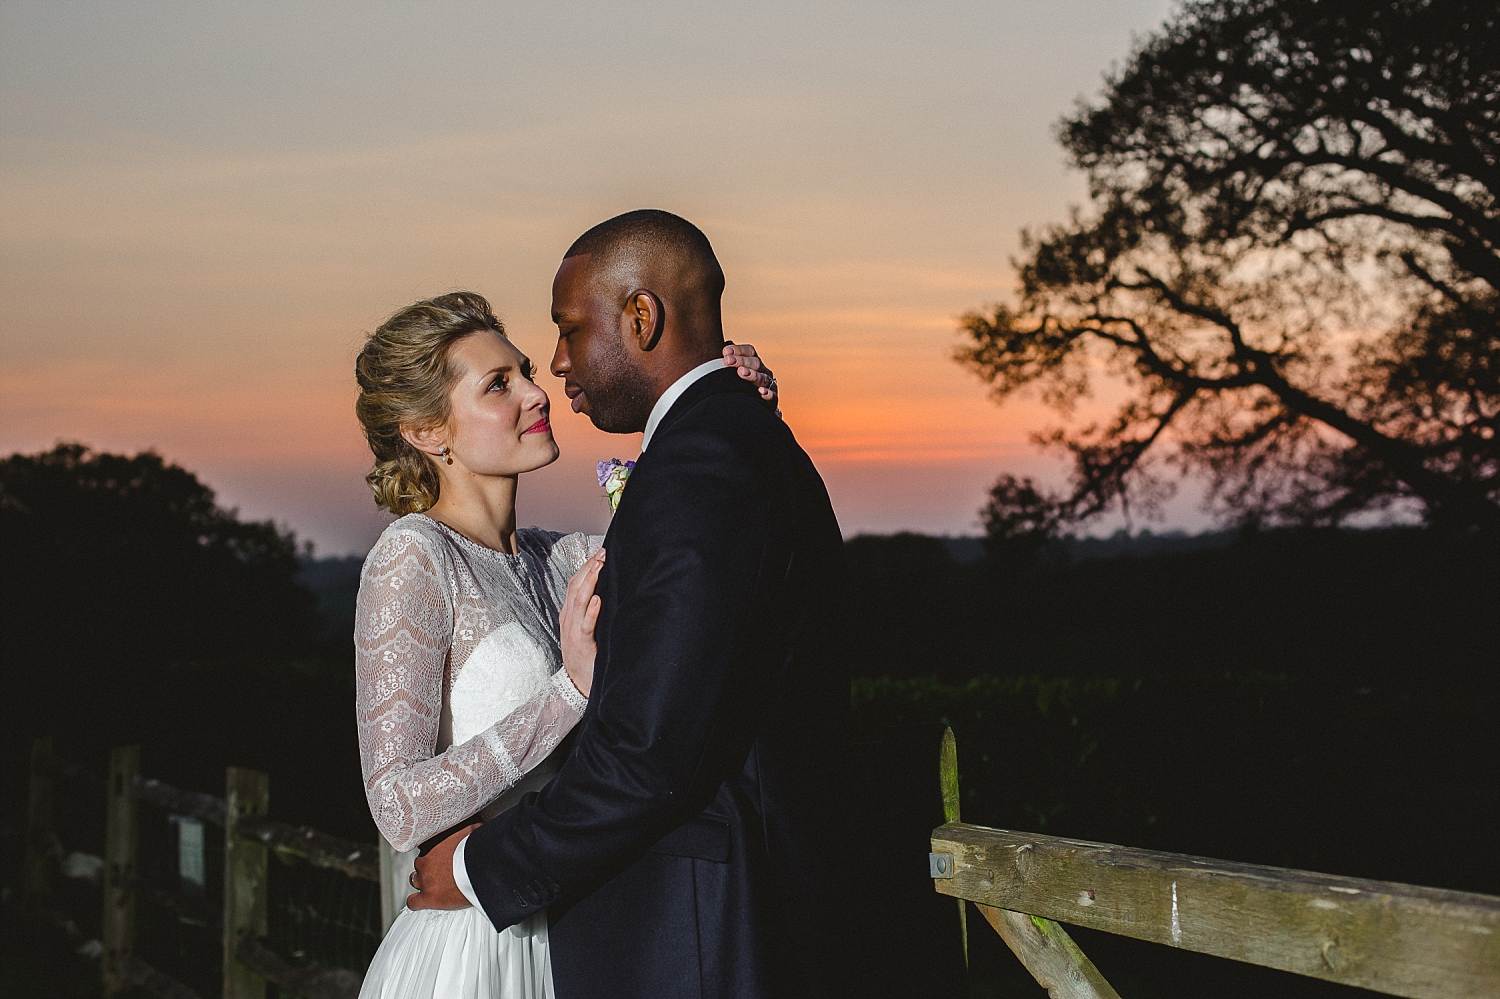 Gaynes Park Wedding Photographer - Sunset Couple Portrait